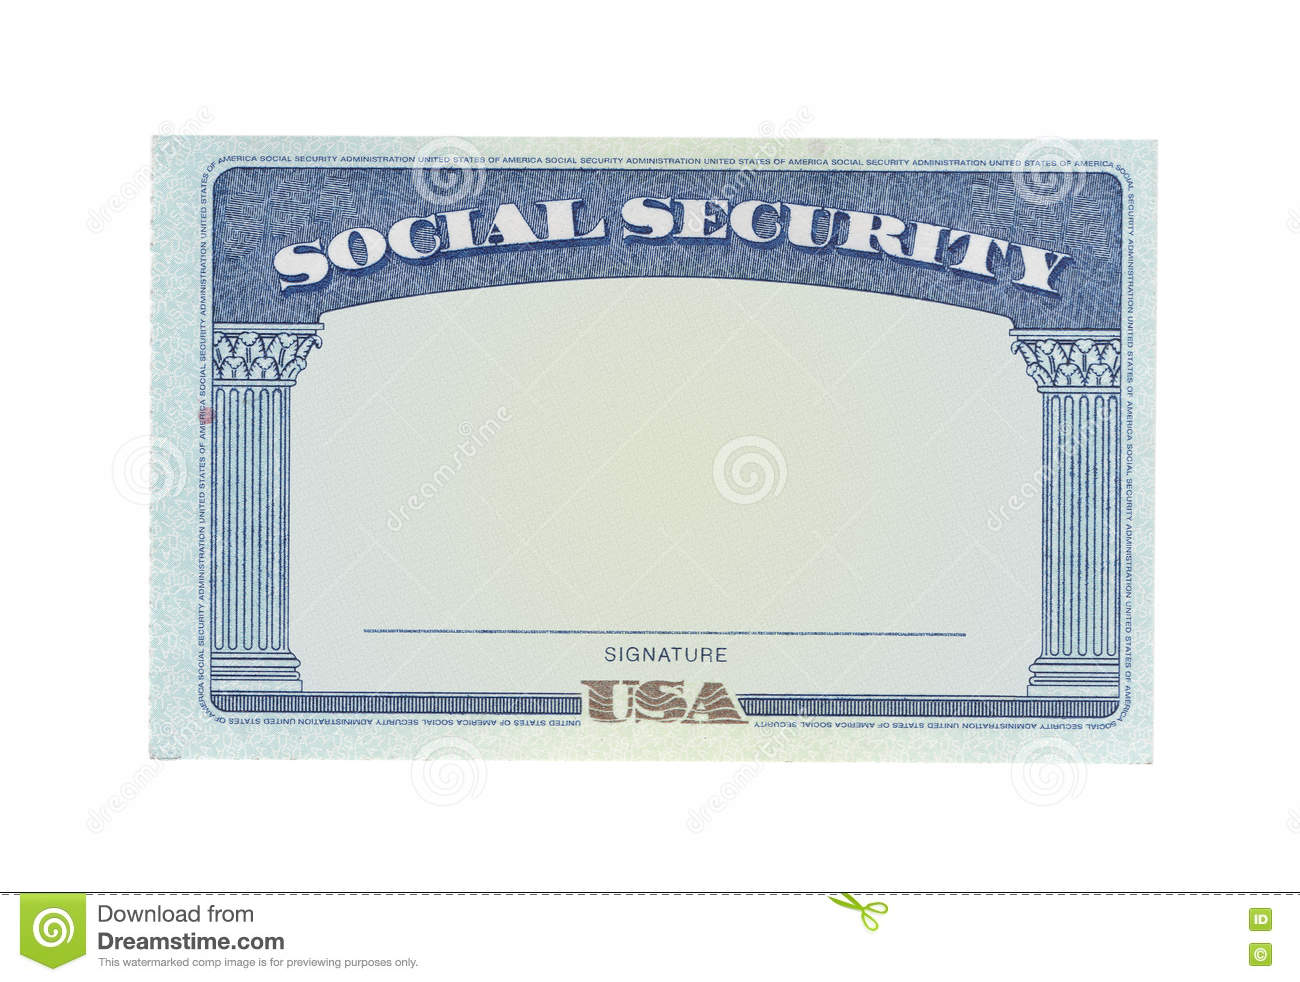 Blank social security card stock photo. Image of money ...